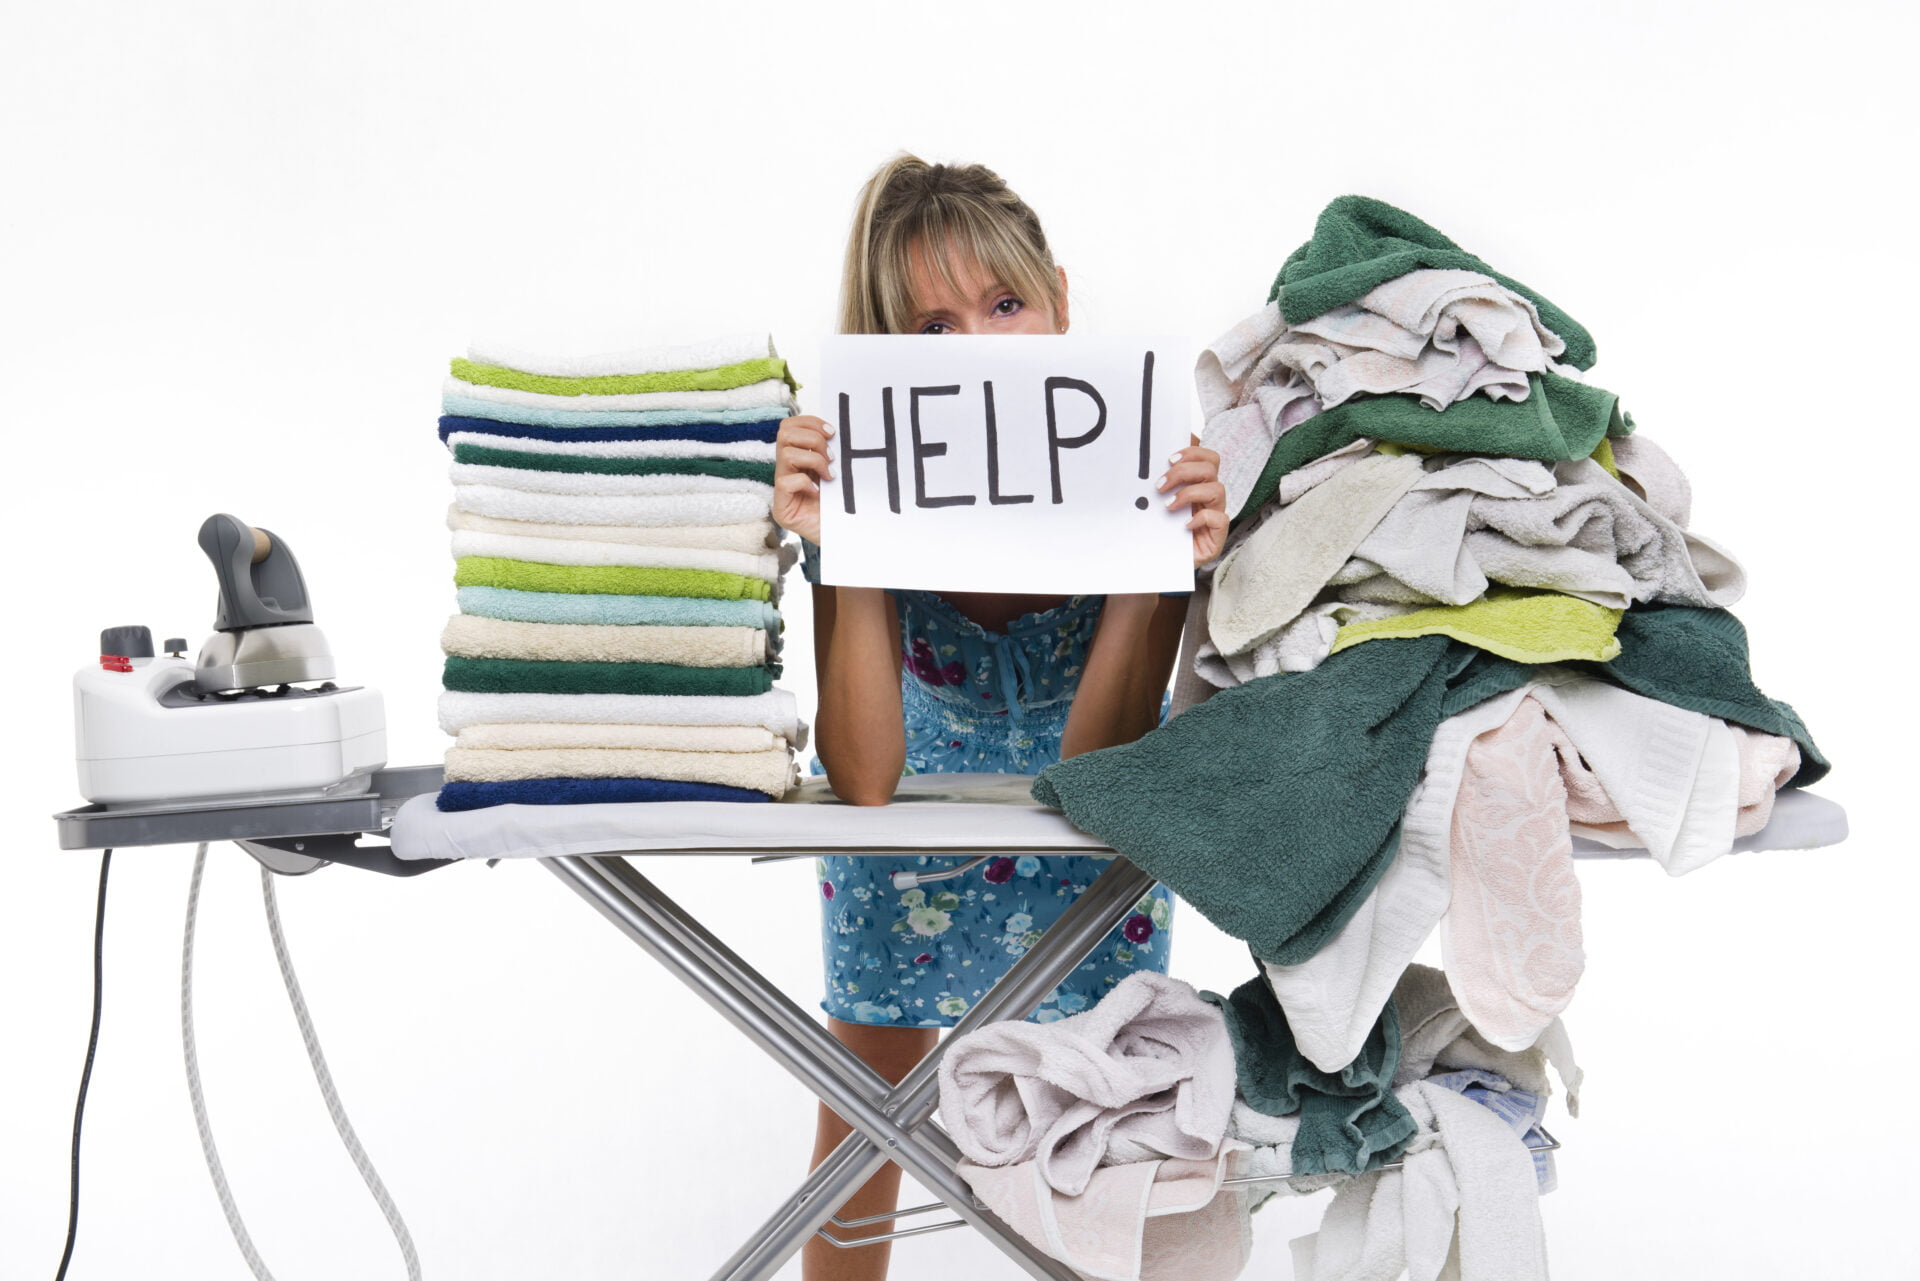 Woman behind a table covered with clothes to be ironed, displays a sign with help